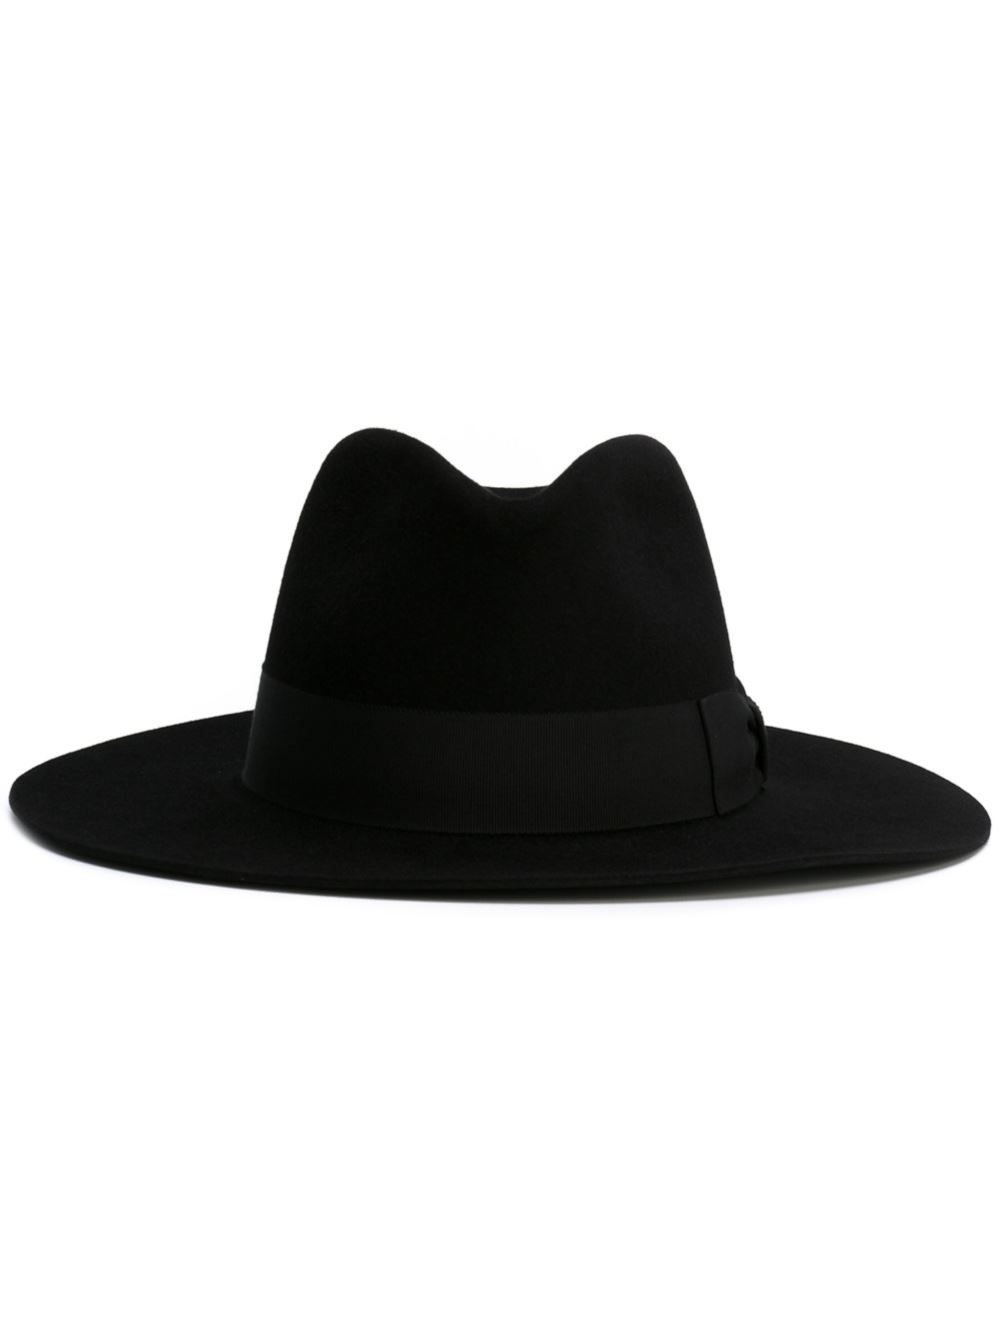 Saint Laurent fedora hat.jpg